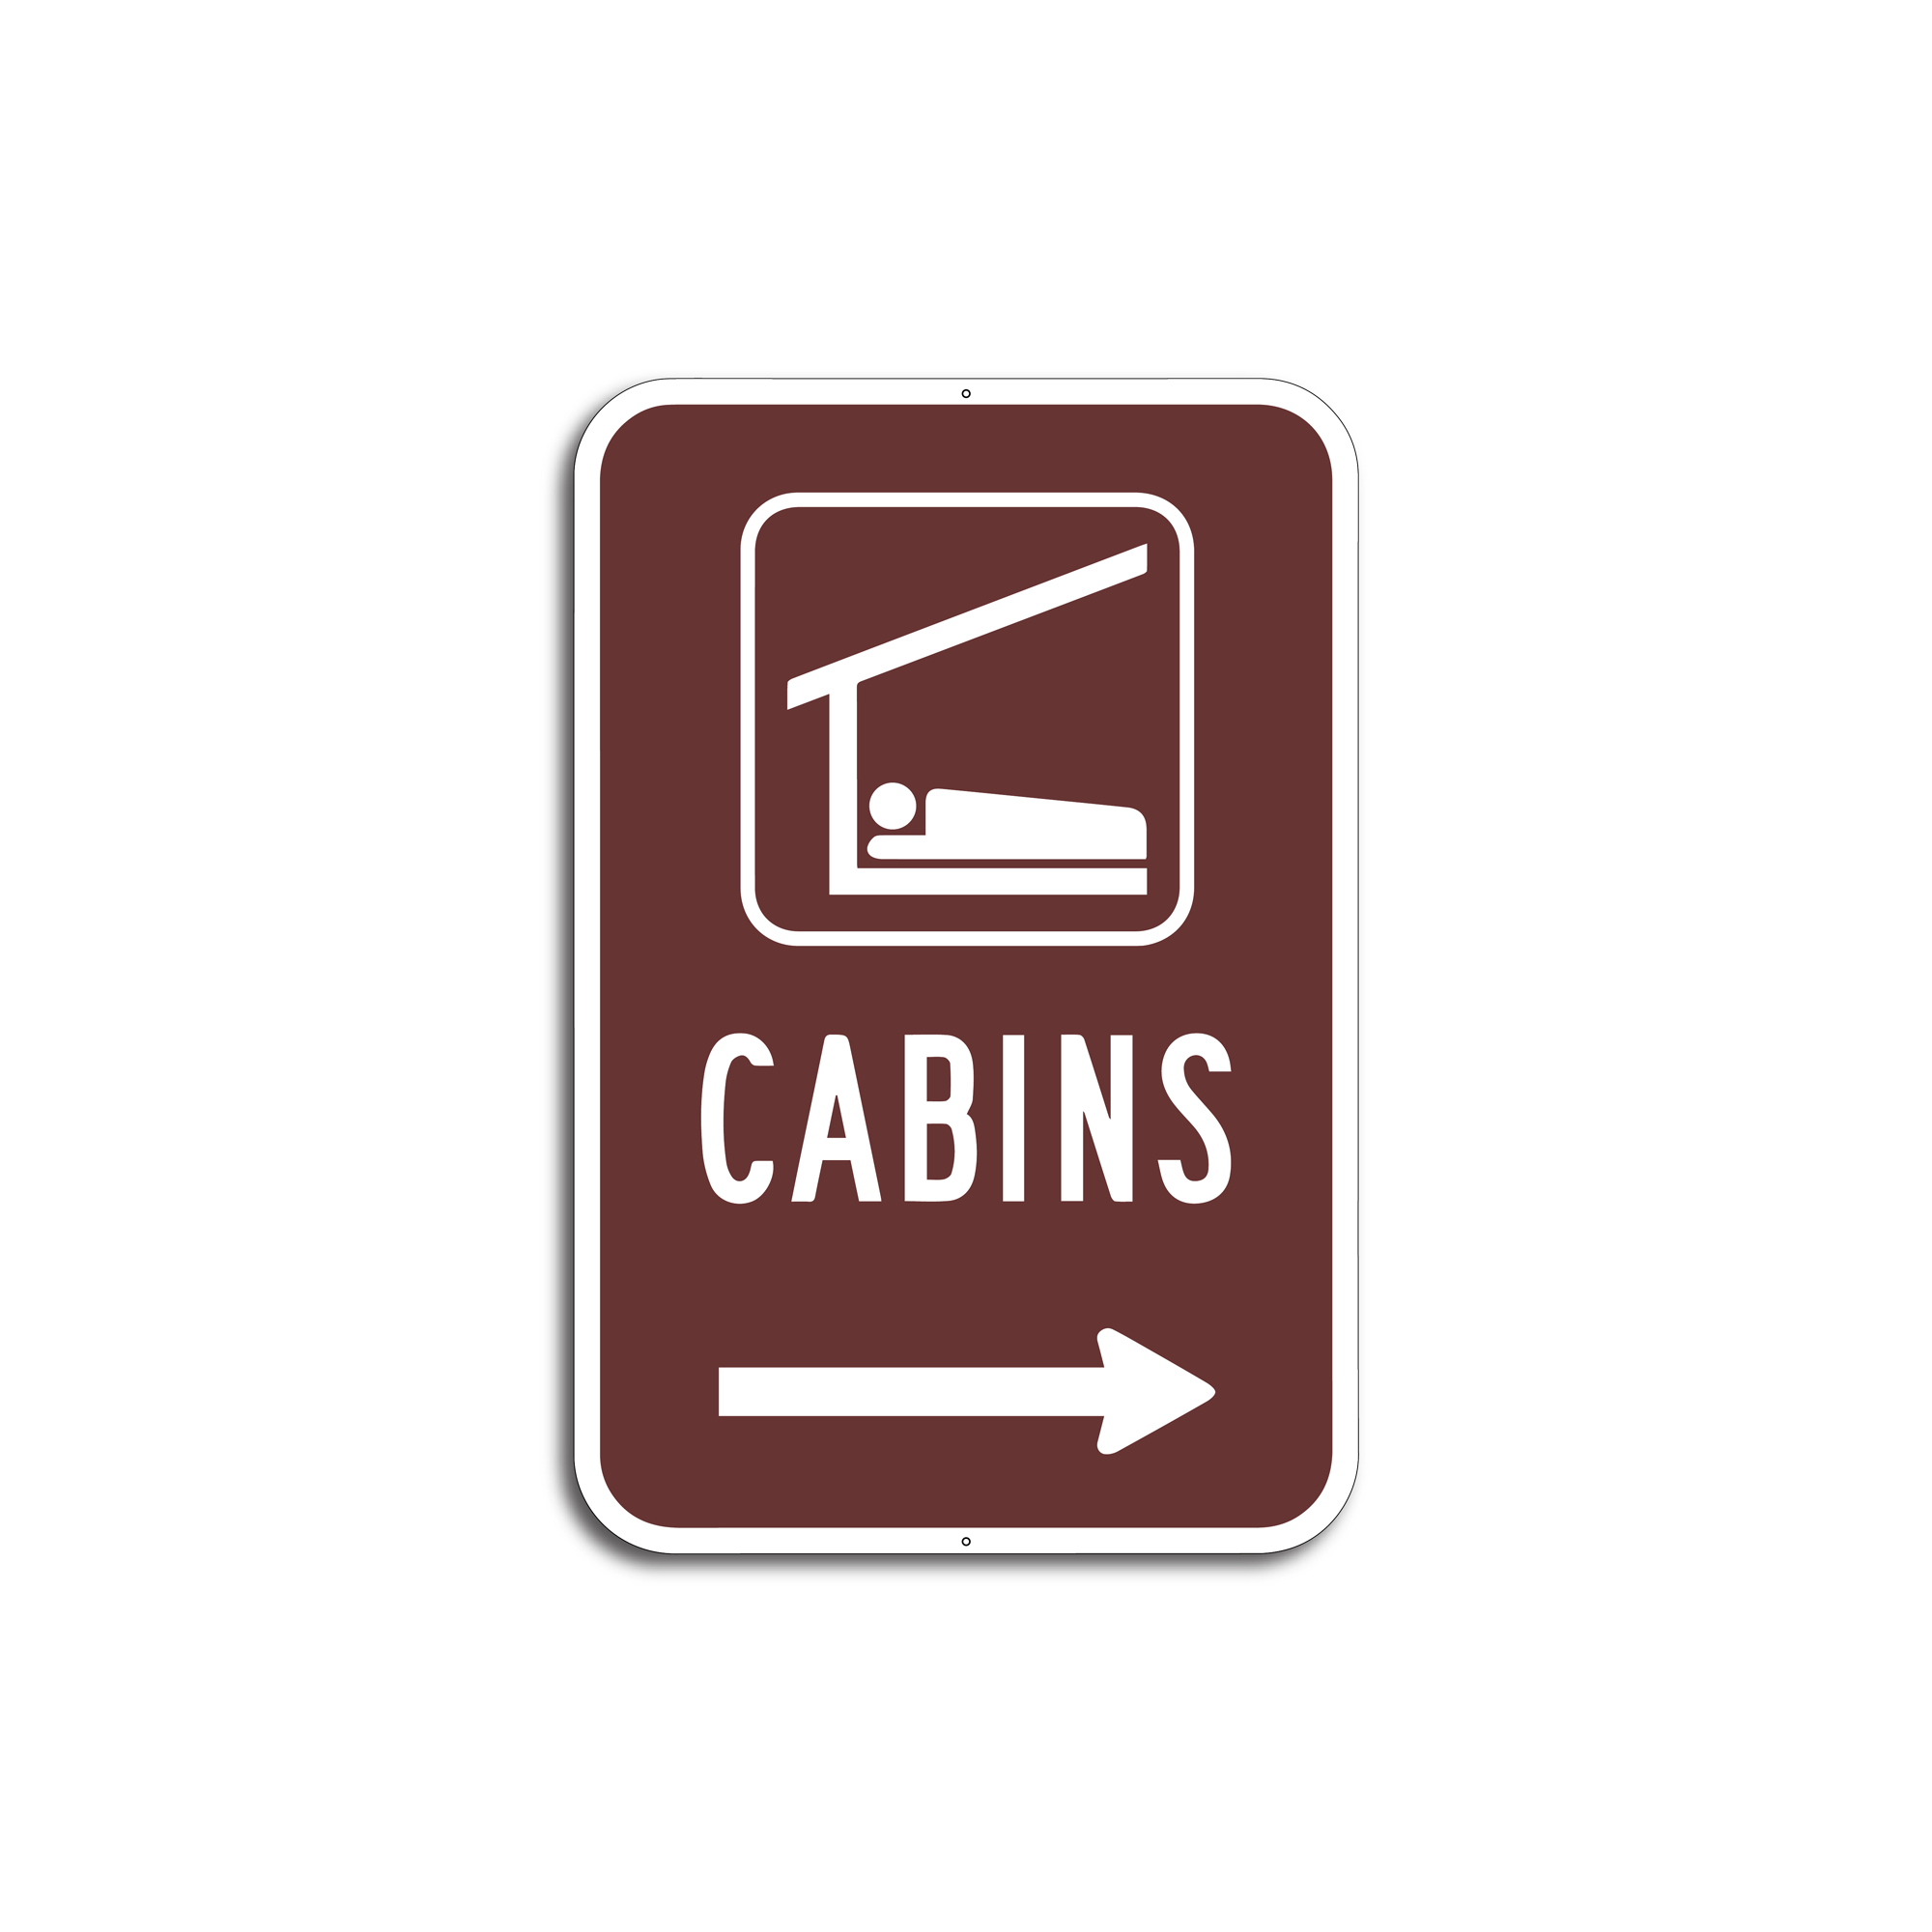 CABINS-01